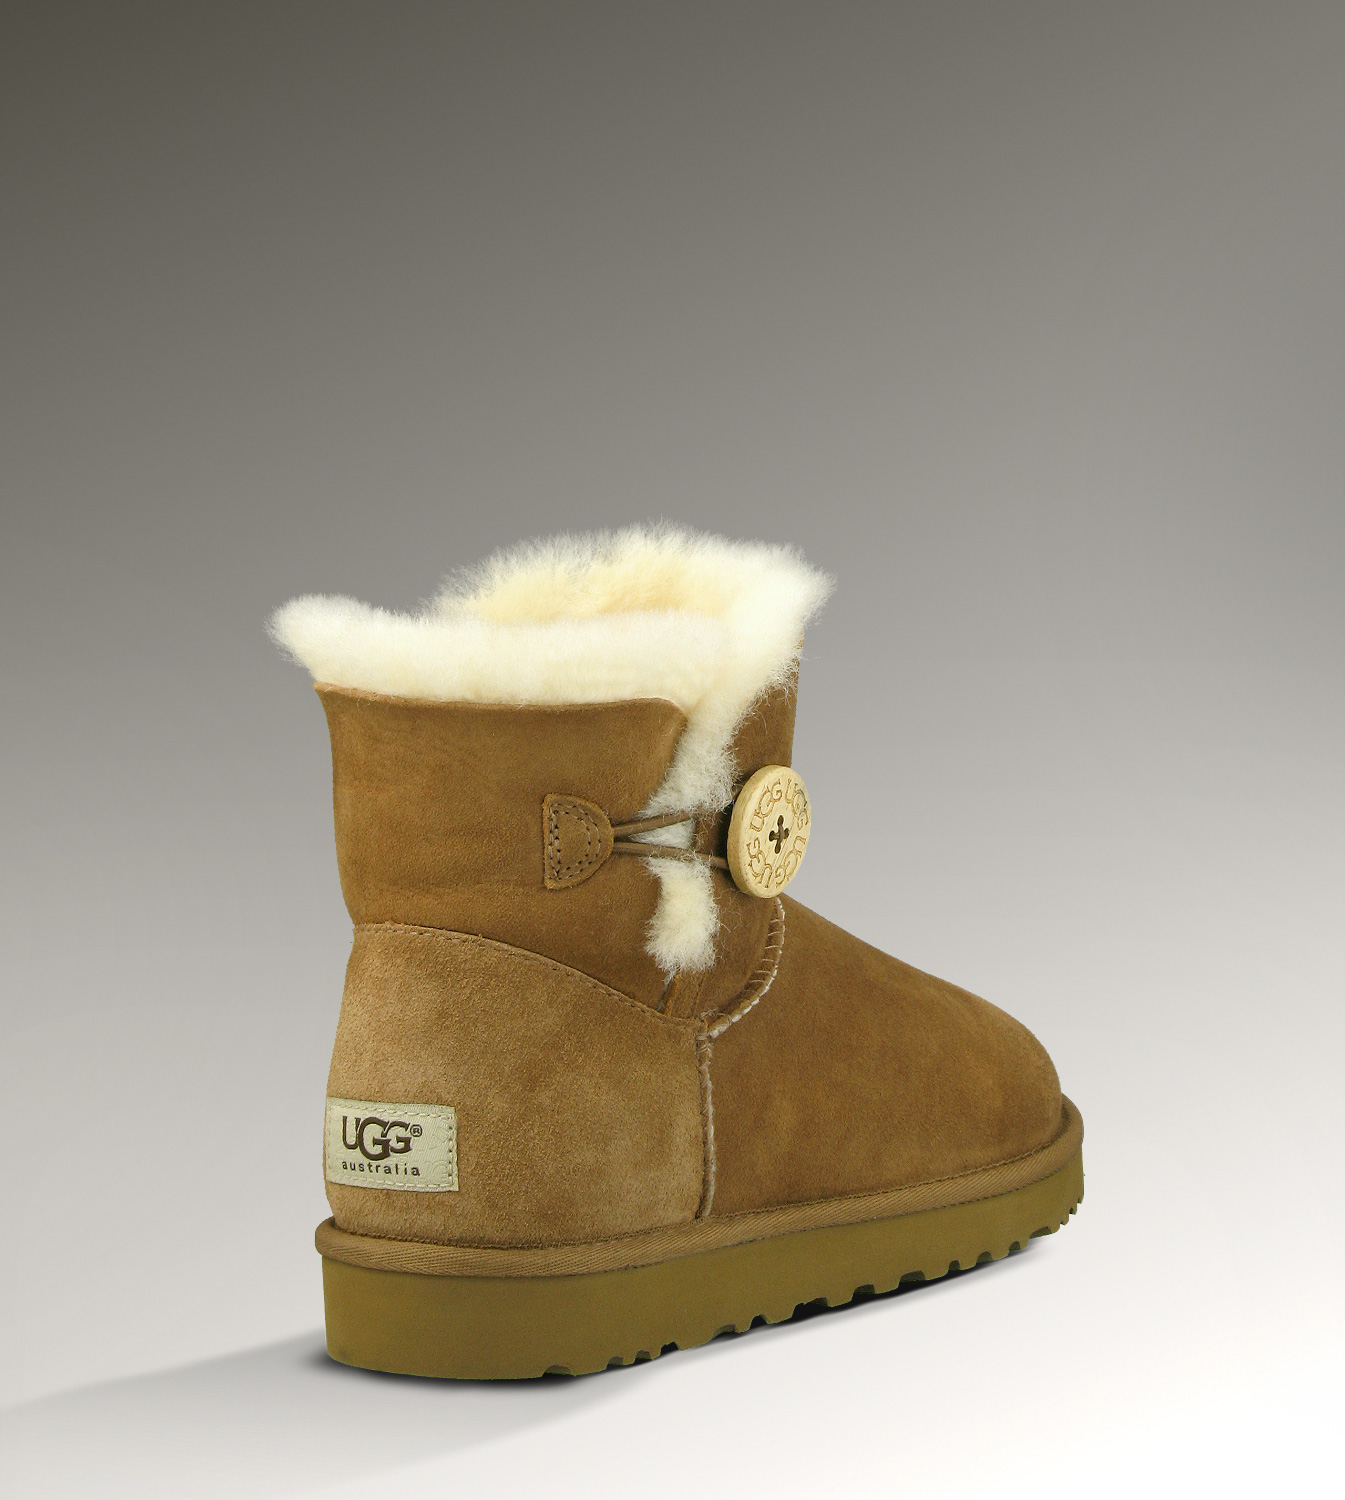 UGG Bailey Button Mini 3352 Chestnut Boots